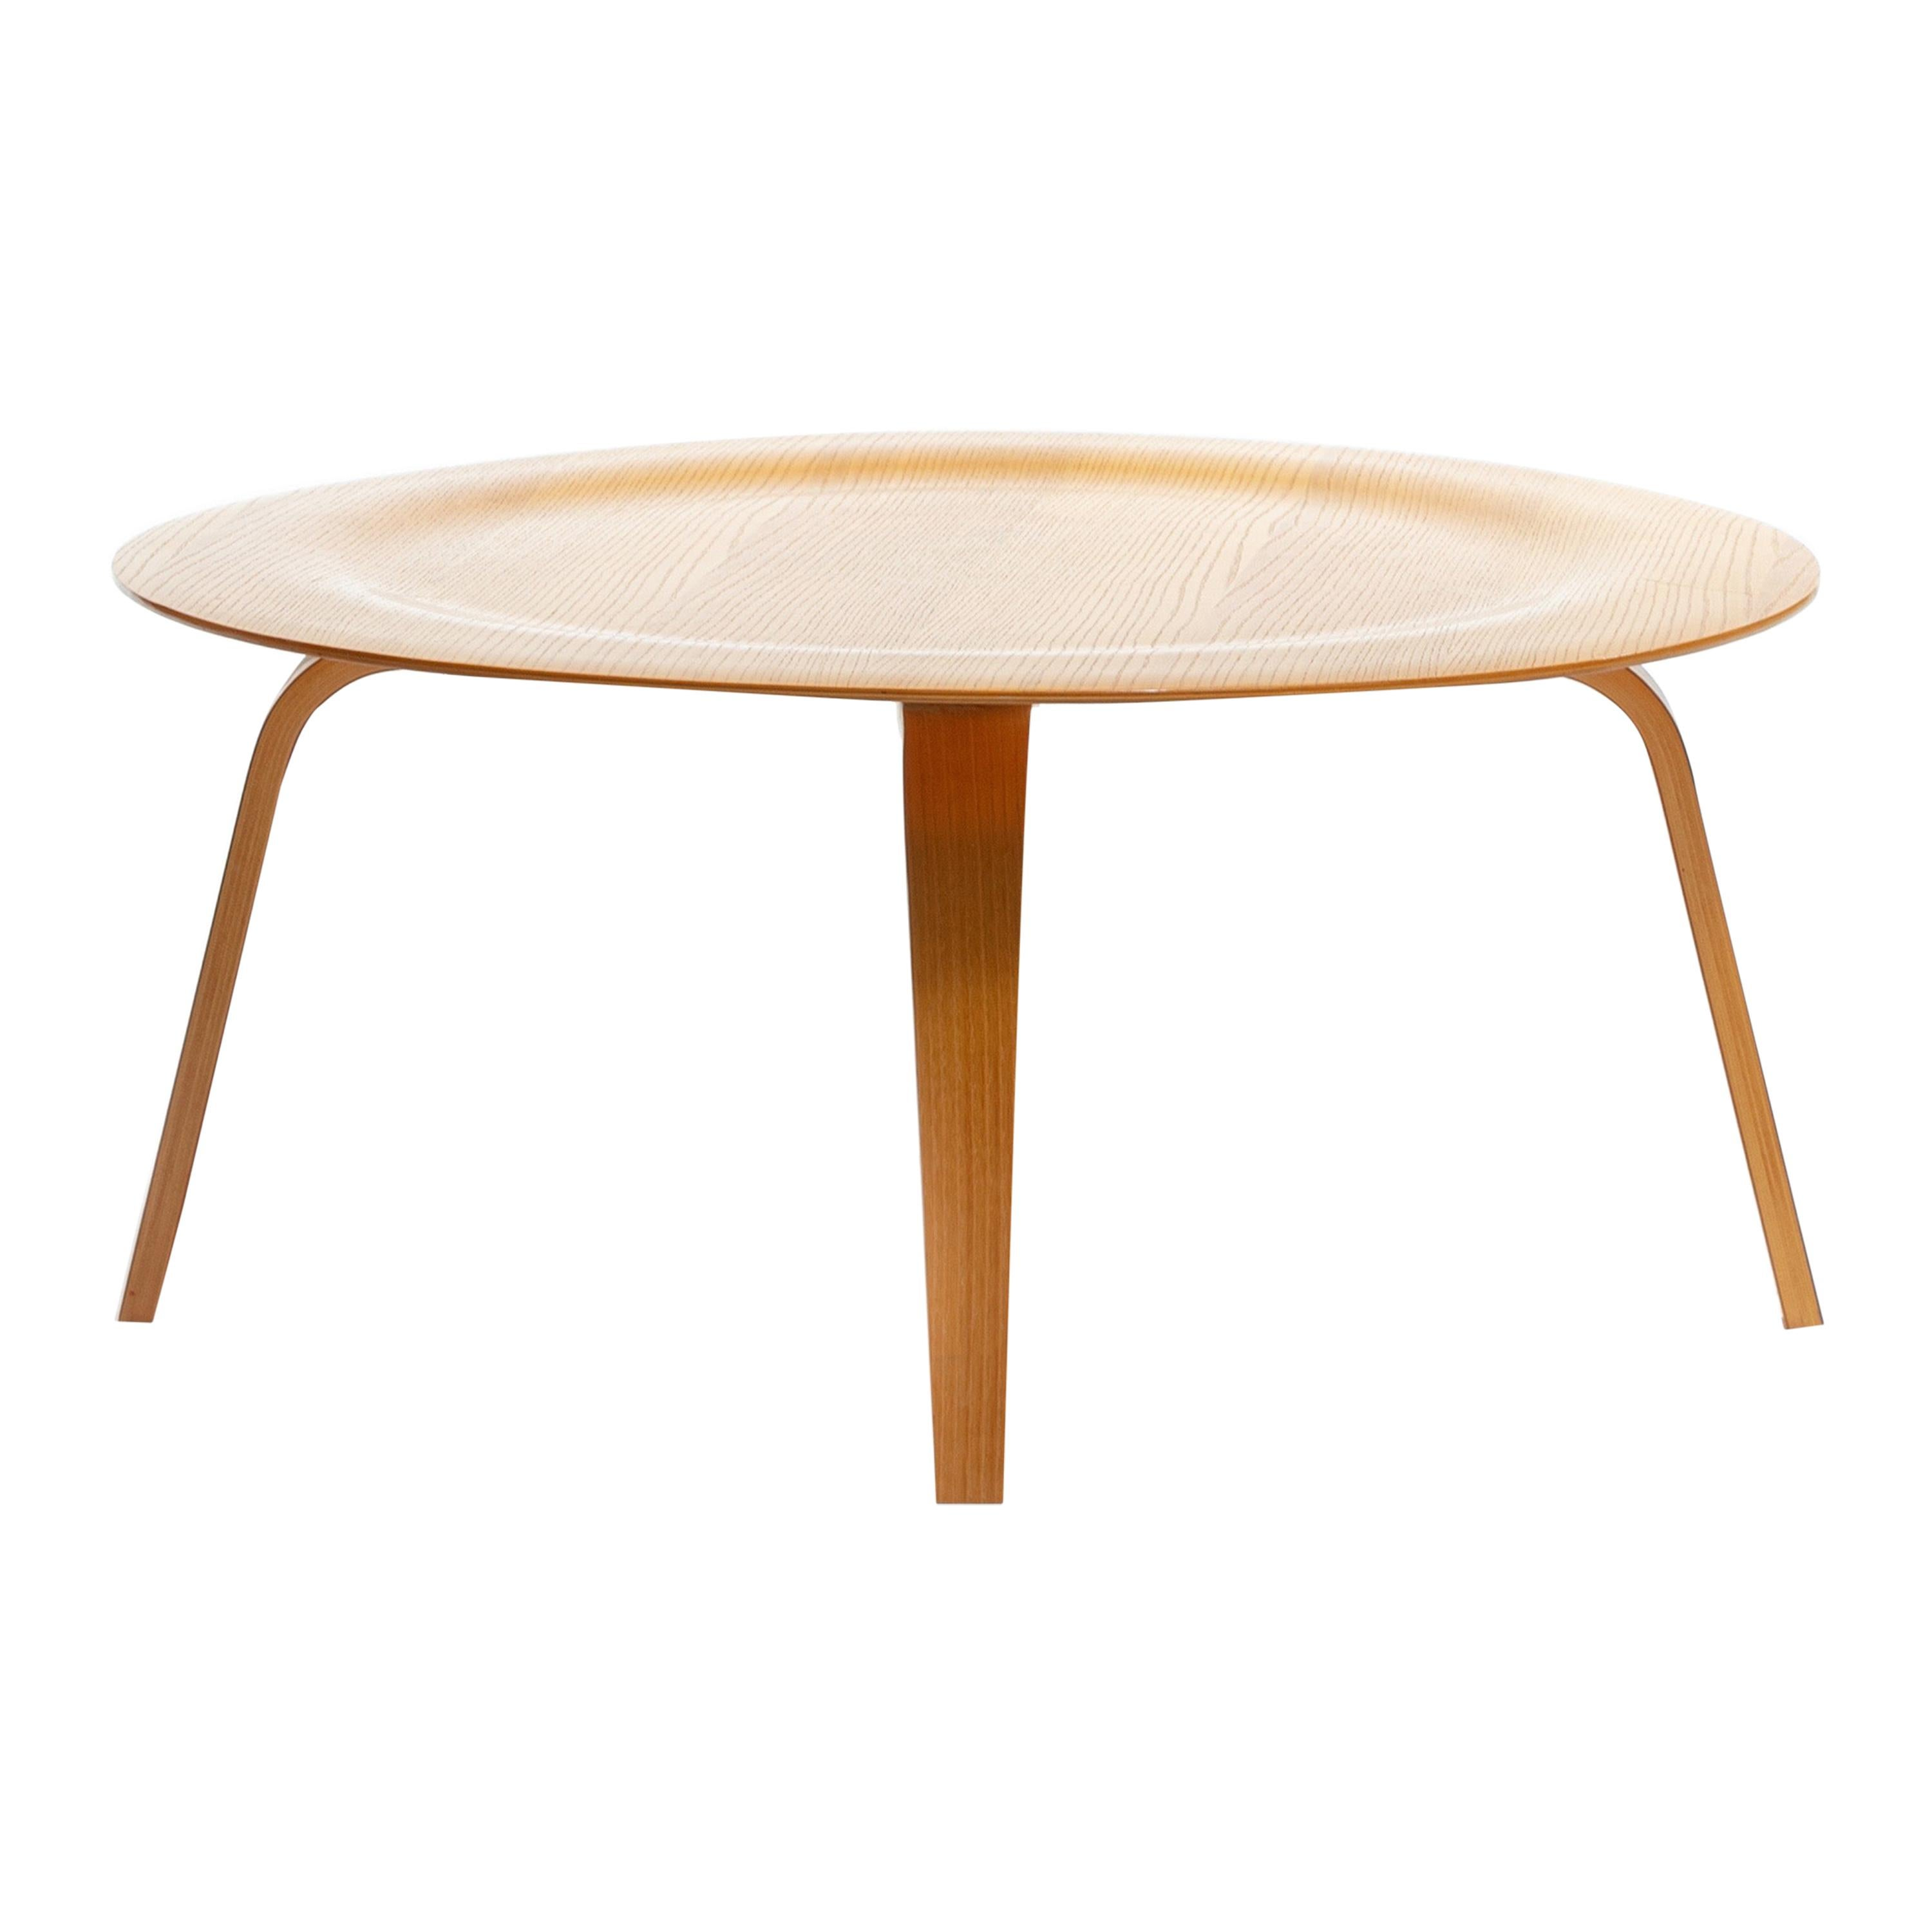 Charles and Ray Eames CTW 'Coffee Table Wood' for Herman Miller